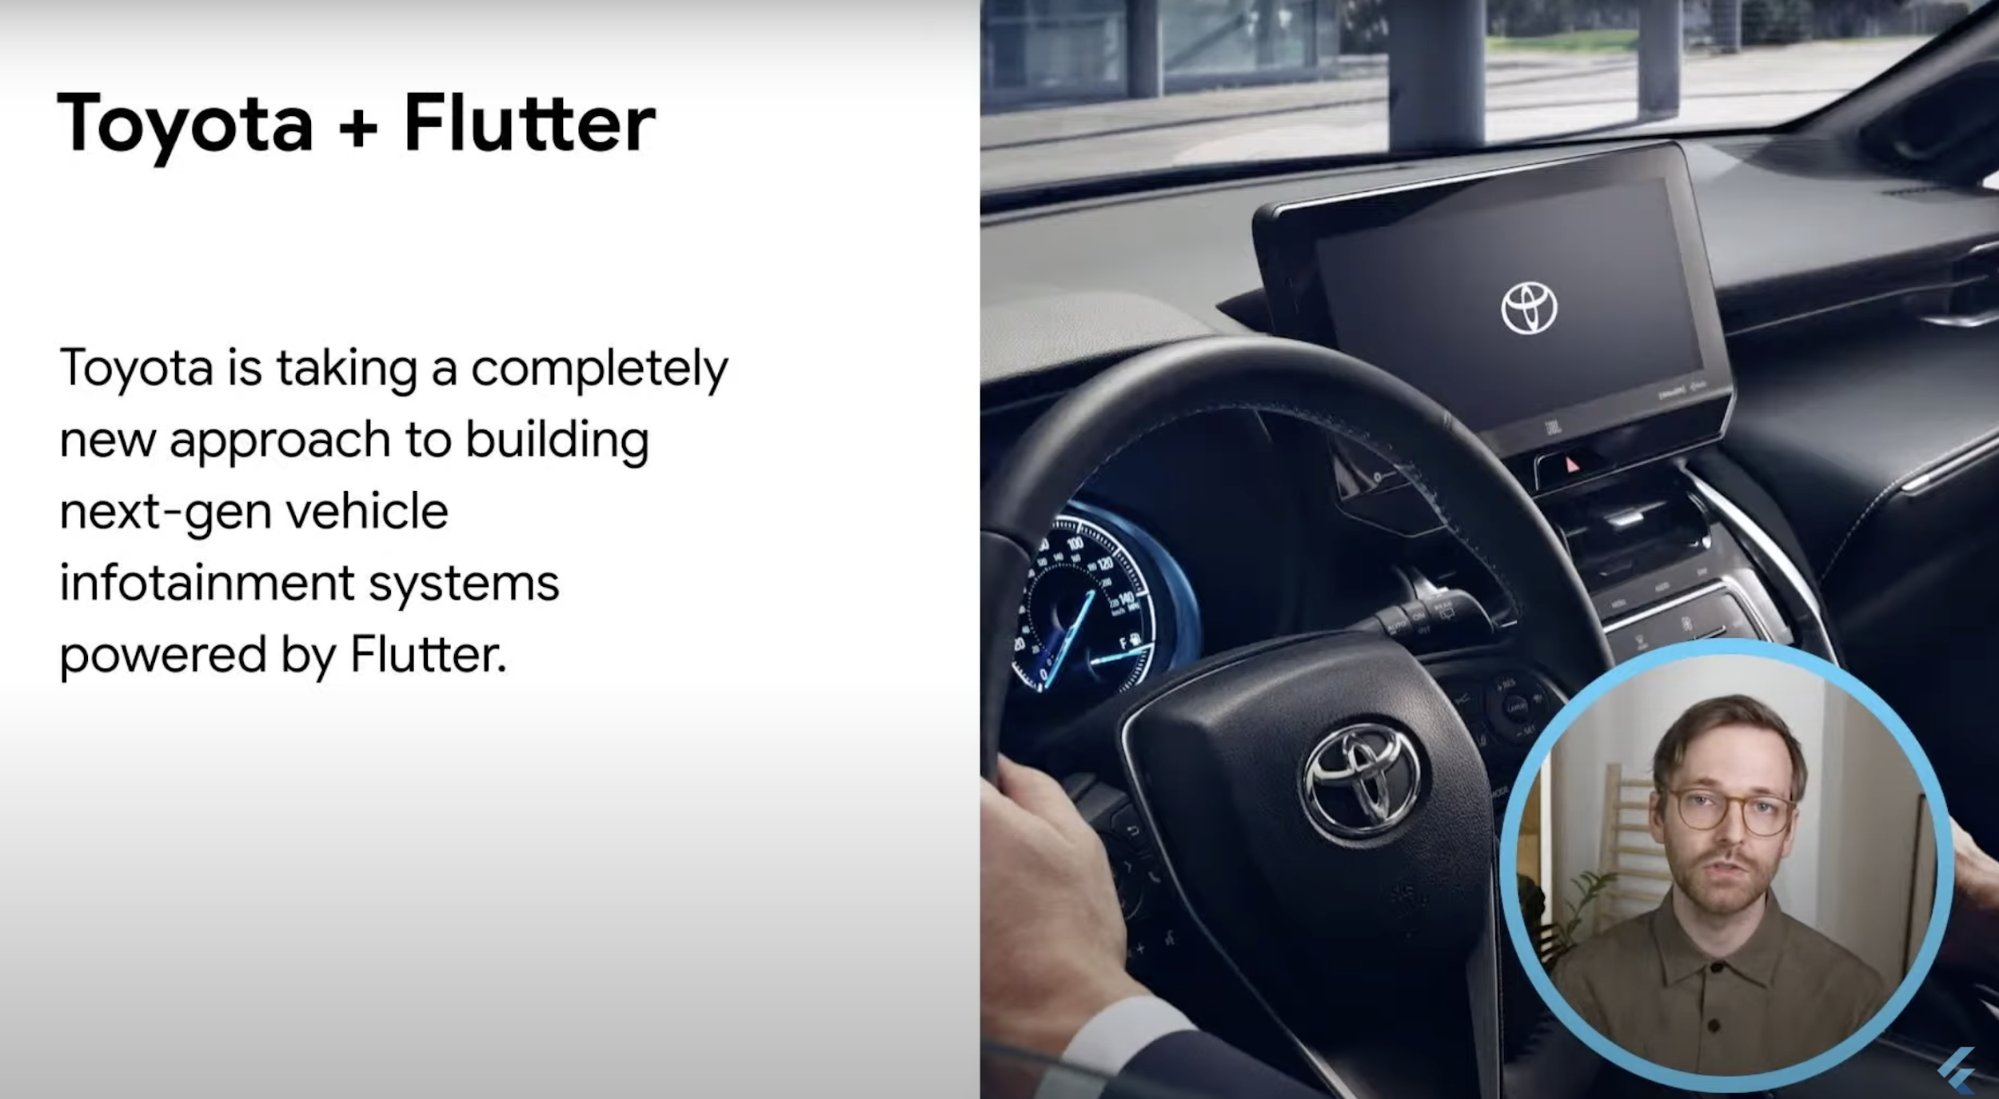 Screenshot from keynote about Toyota's use of Flutter